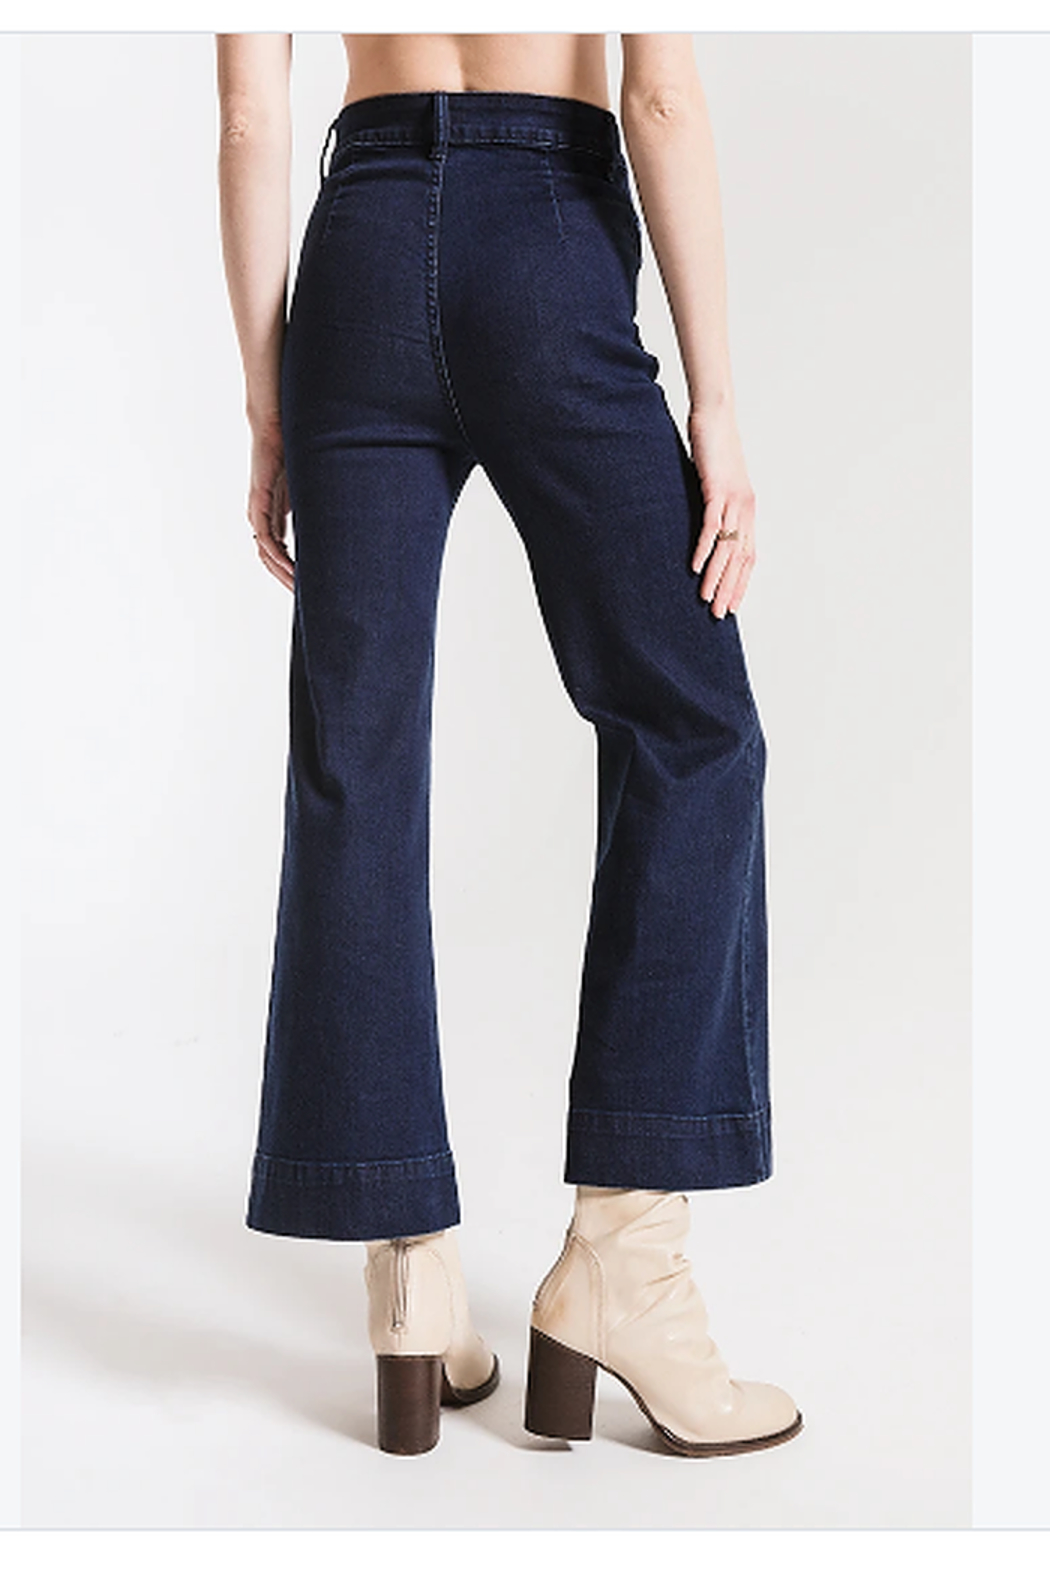 Others Follow  Dark joy pant - Front Full Image